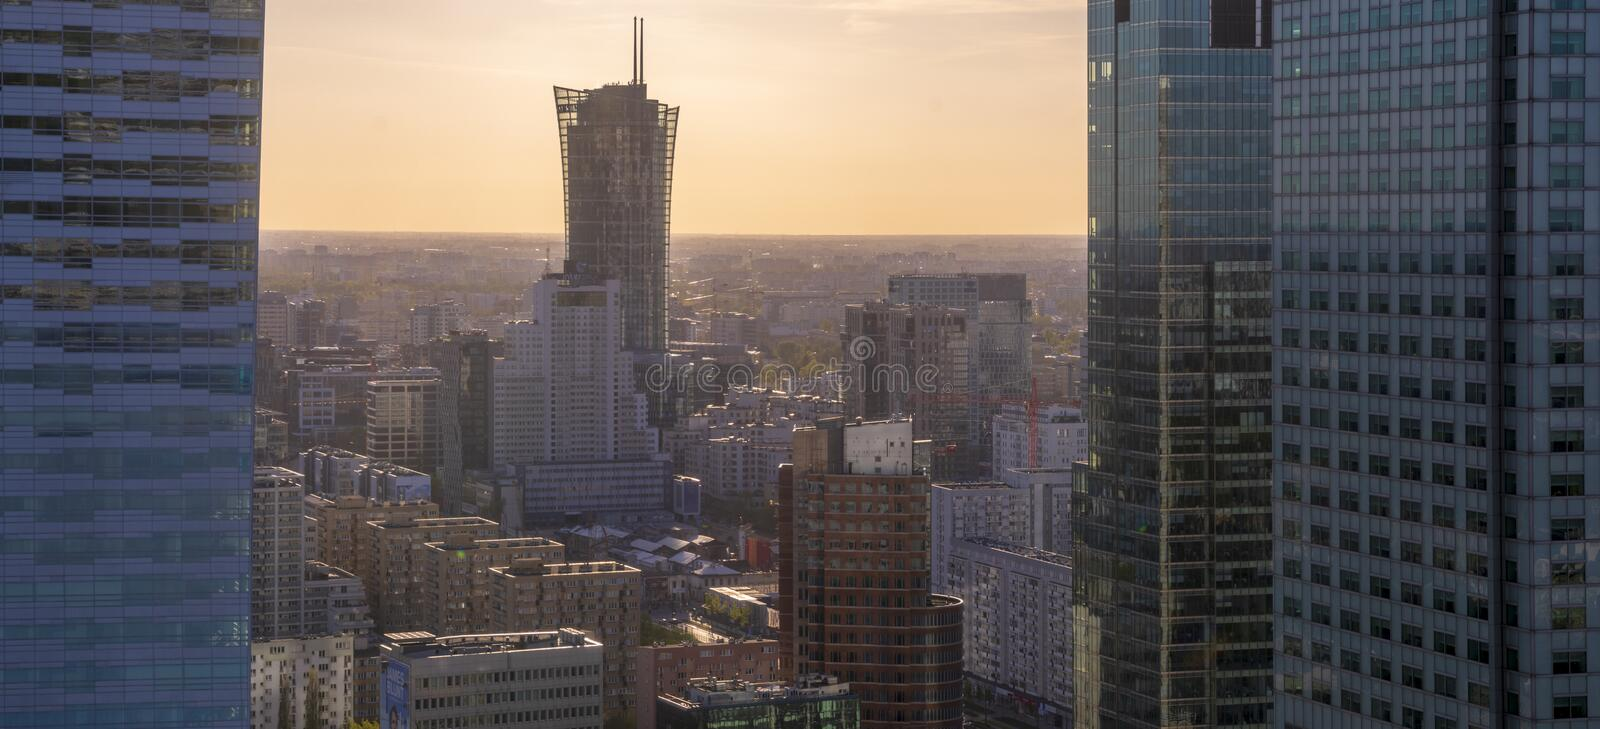 Warsaw city with modern skyscraper Poland royalty free stock images